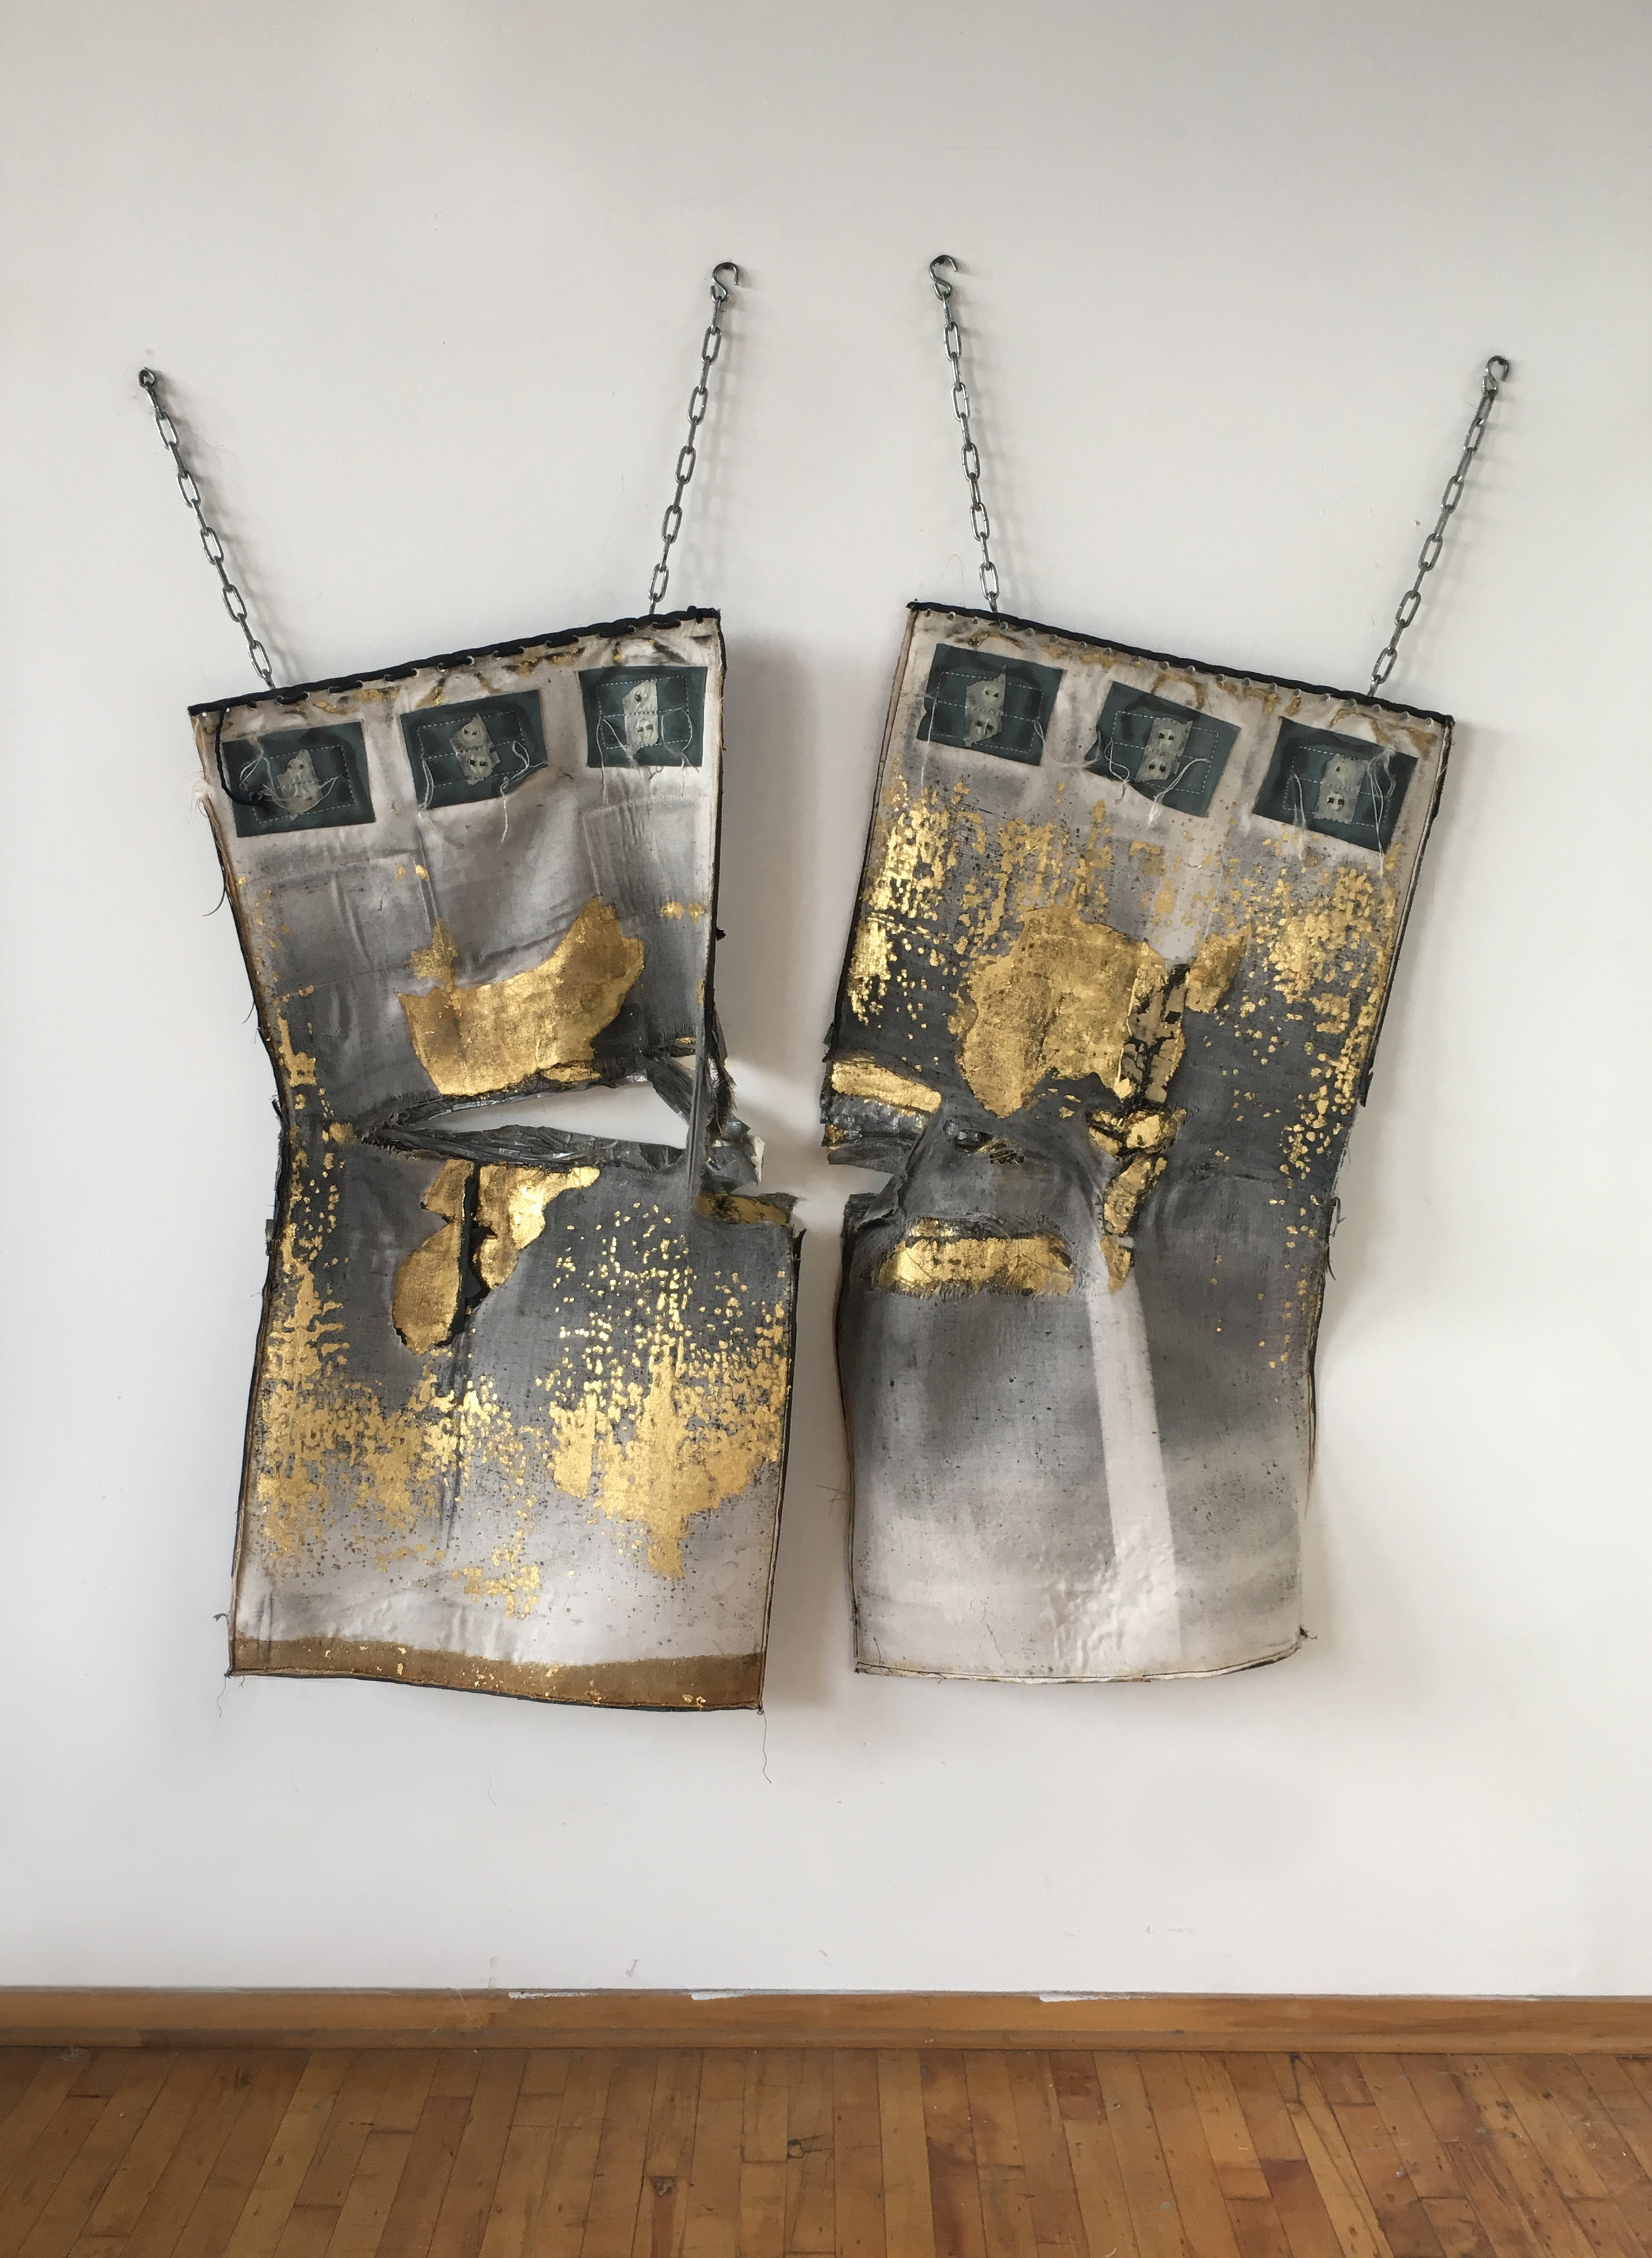 Cheryl Pope     Heavyweight (2017)     23k gold leaf, steel chains, used leathery Heavy boxing bag, duct tape    Sold.